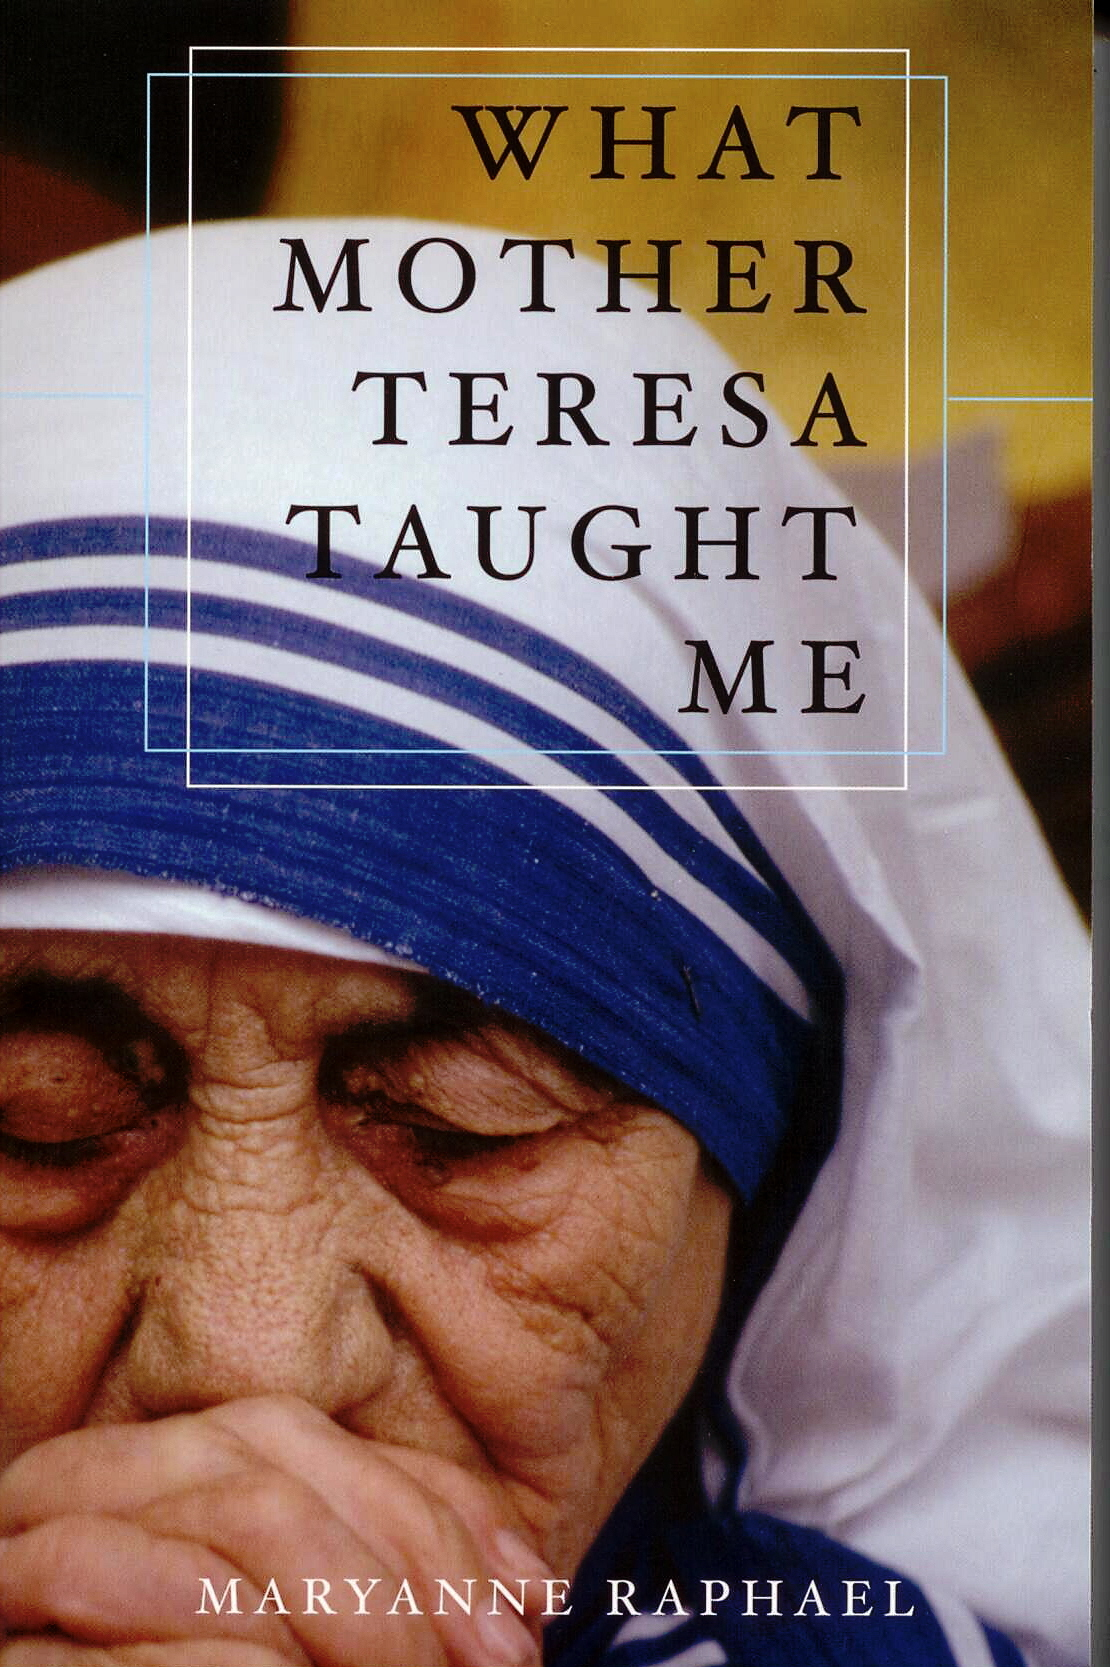 What Mother Teresa Taught Me by MaryAnne Raphael